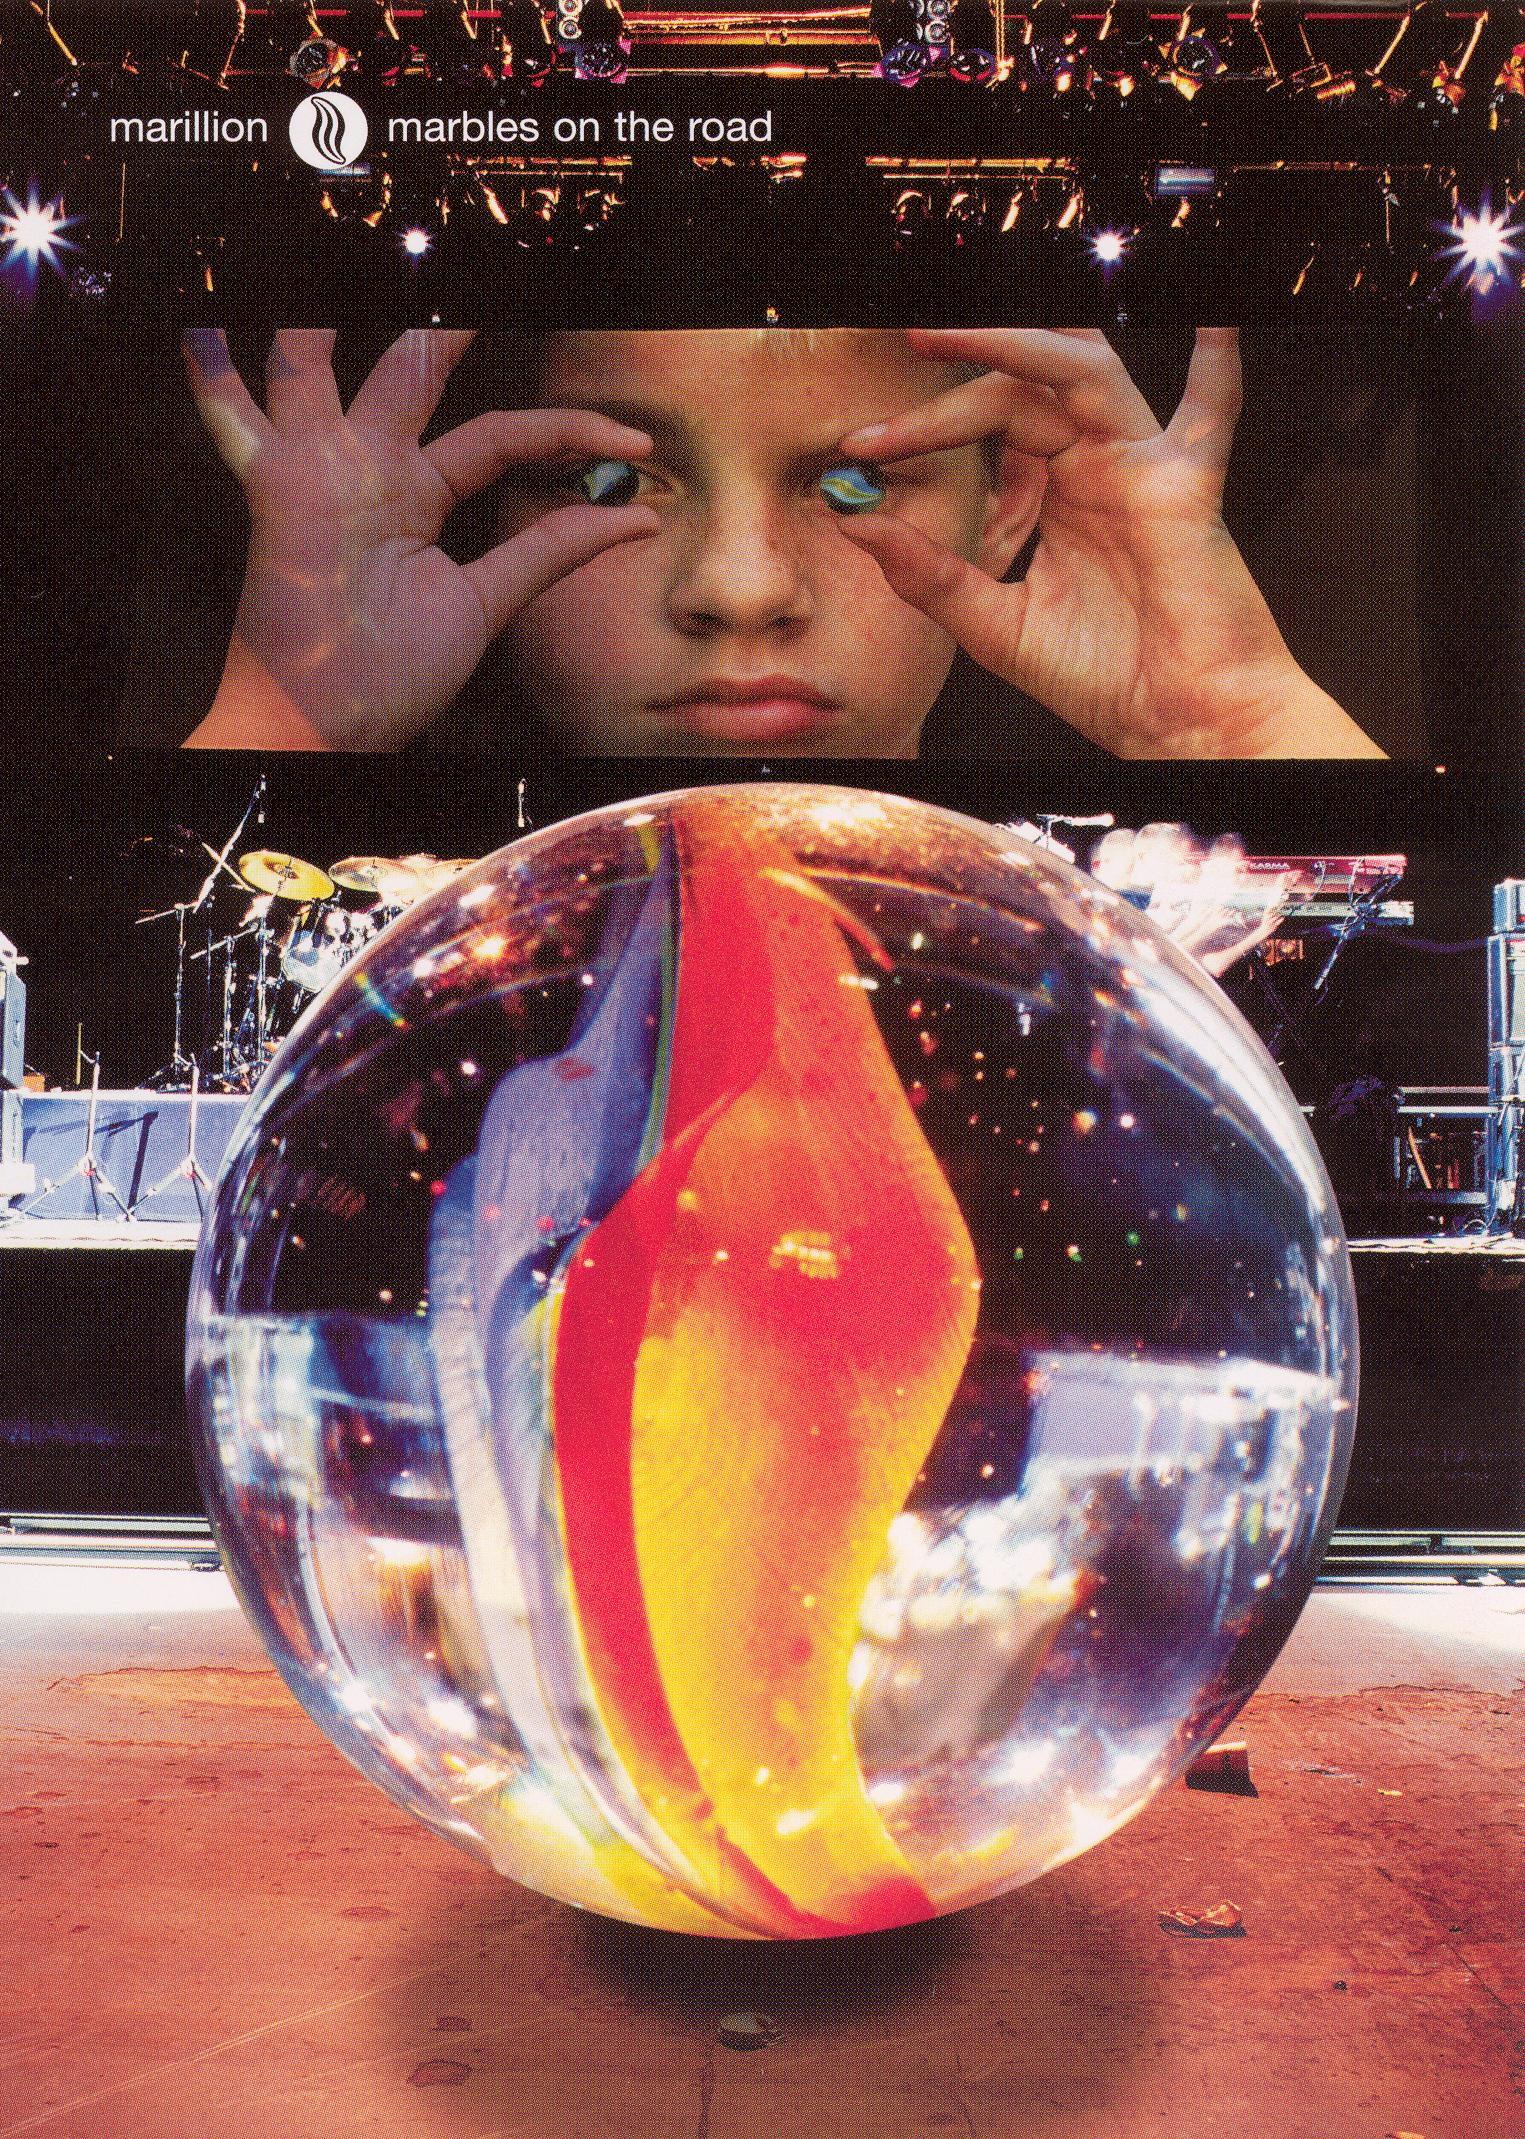 Marillion: Marbles On the Road